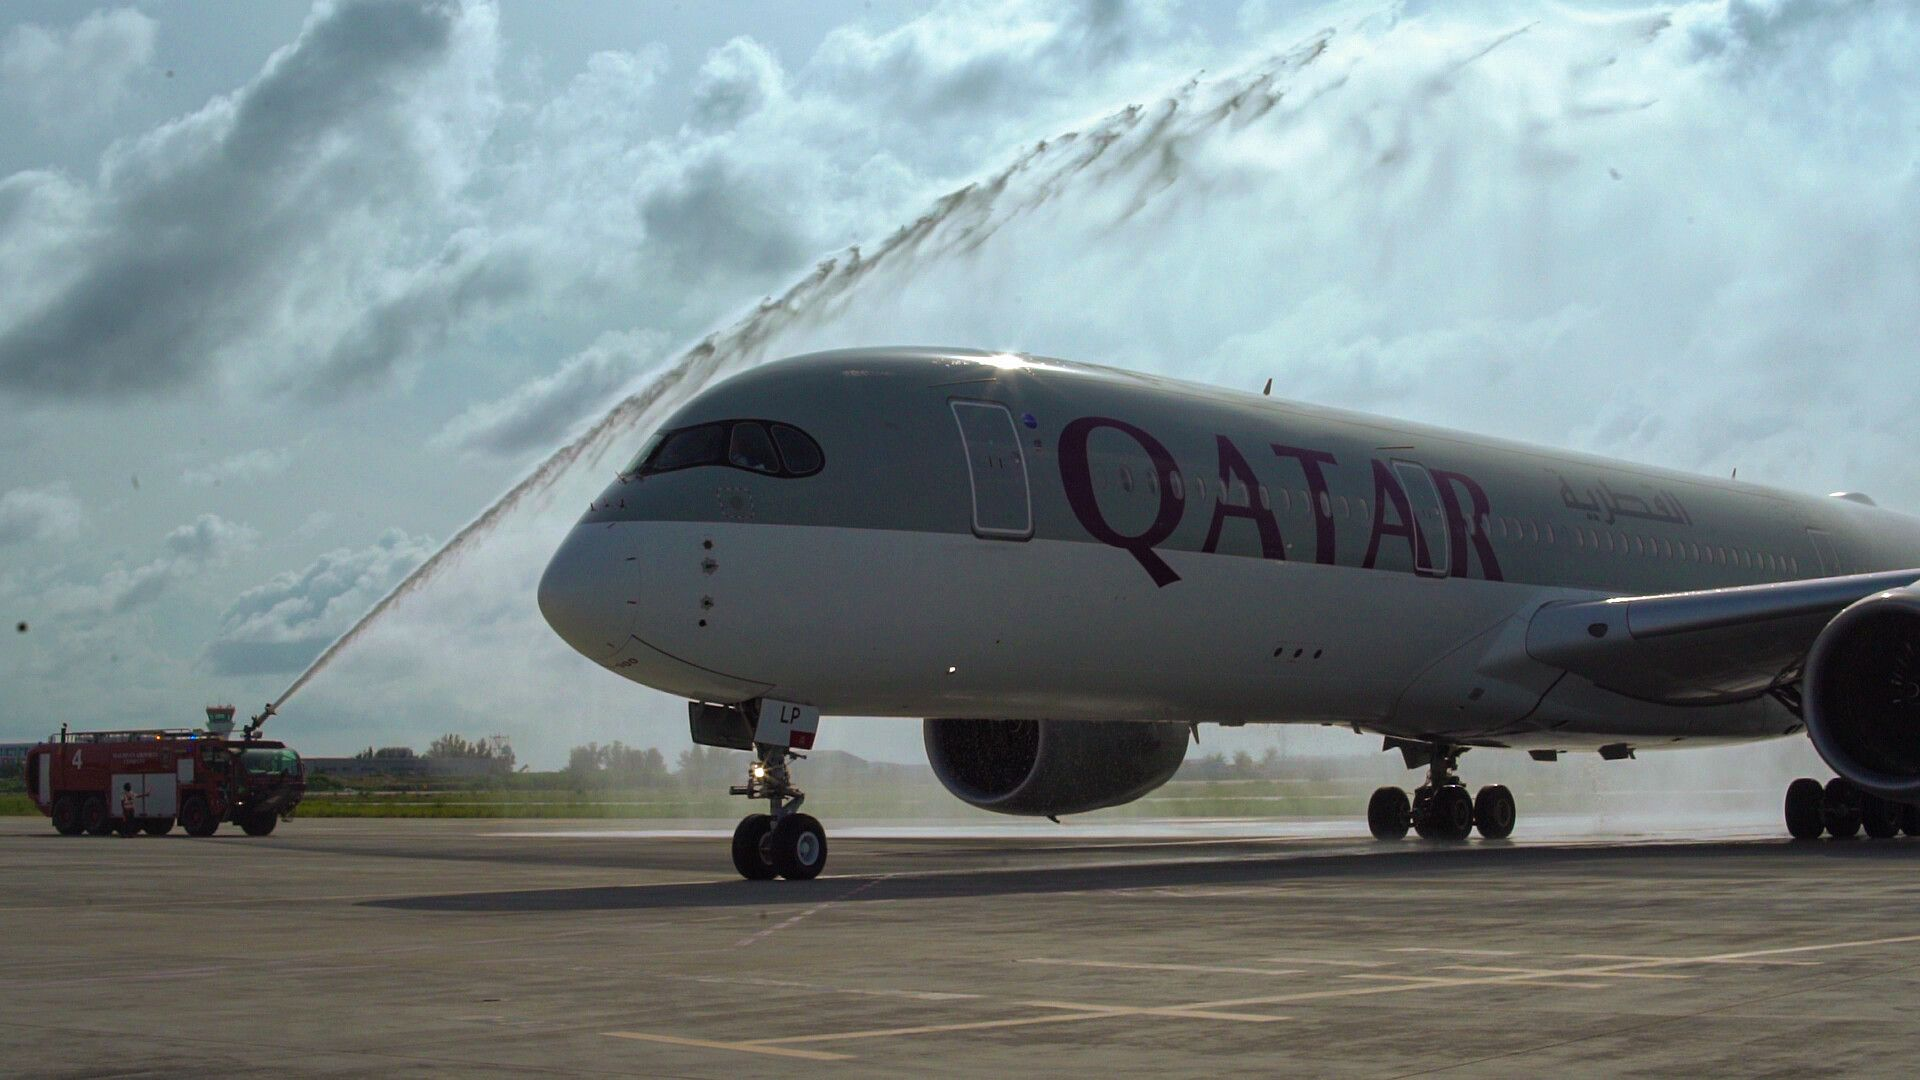 Pin on Qatar Airways in the news (2020)